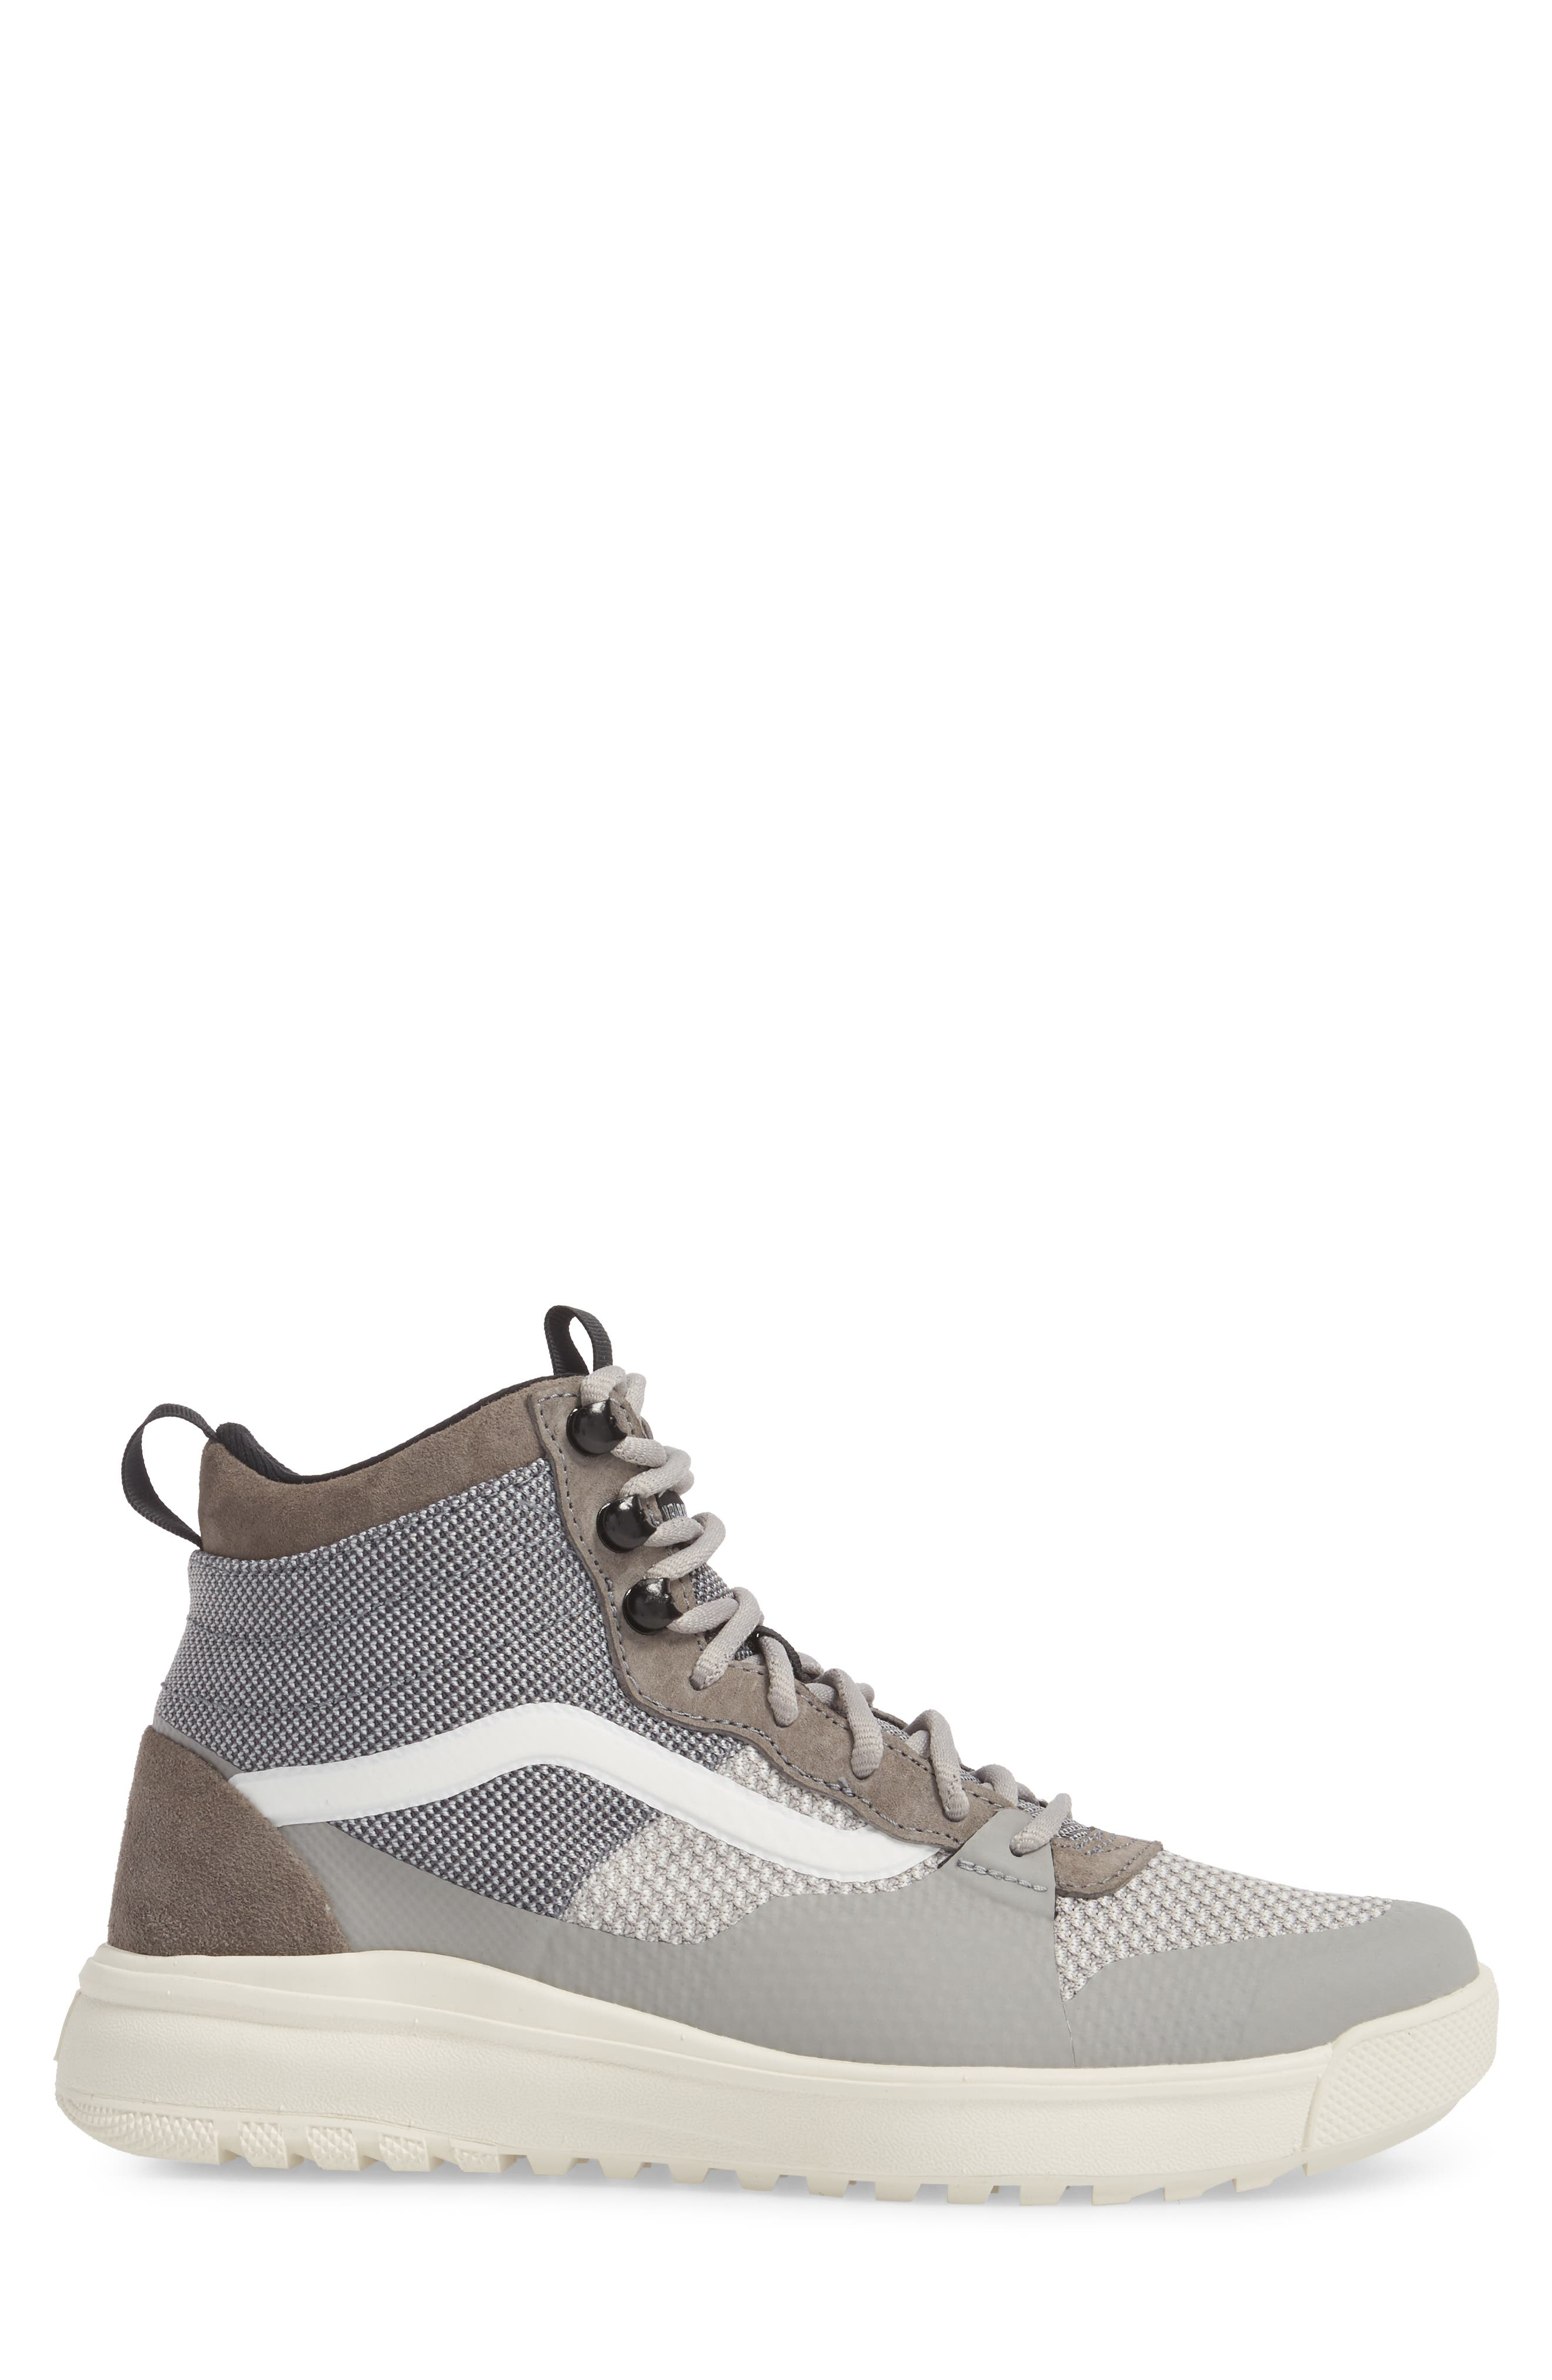 UltraRange DX High Top Sneaker,                             Alternate thumbnail 3, color,                             Pewter/ Drizzle